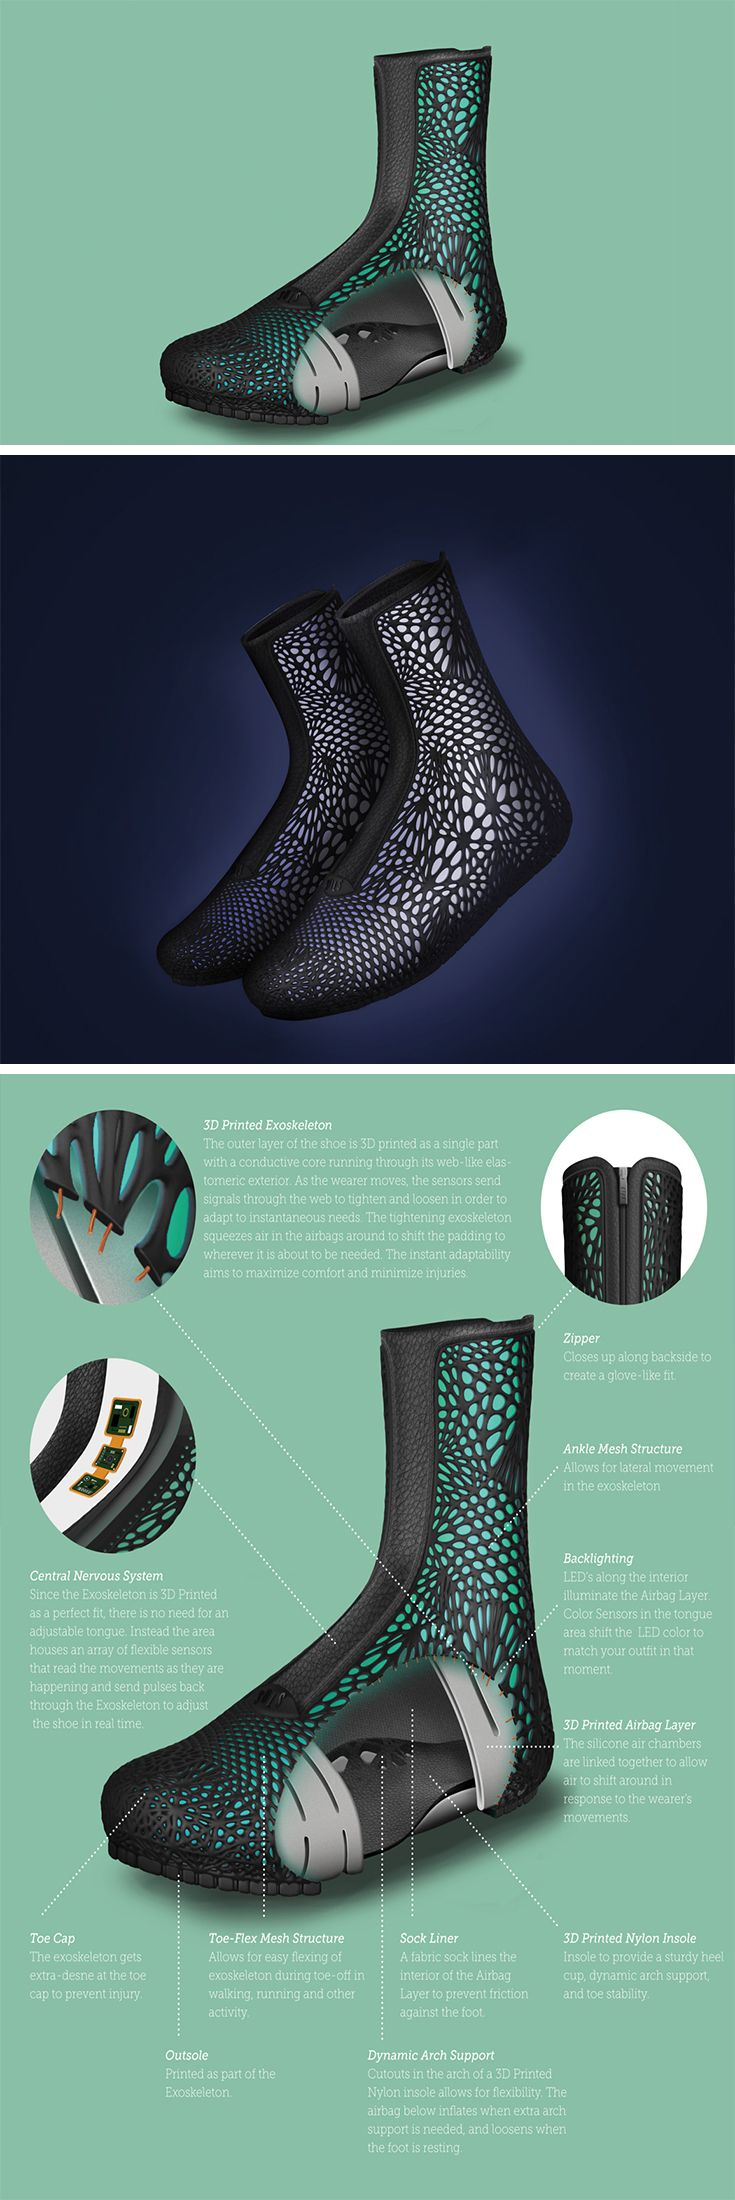 Designed entirely by humans and manufactured entirely by robots, the ADAPTIV shoe is literally the future. With absolutely no human intervention in the manufacturing process, ADAPTIV is completely made by 3D printing robots. What's more special is the fact that ADAPTIV is built with multiple gyroscopes and pressure sensors. The ADAPTIV Shoe is a winner of the Red Dot Award for the year 2017.